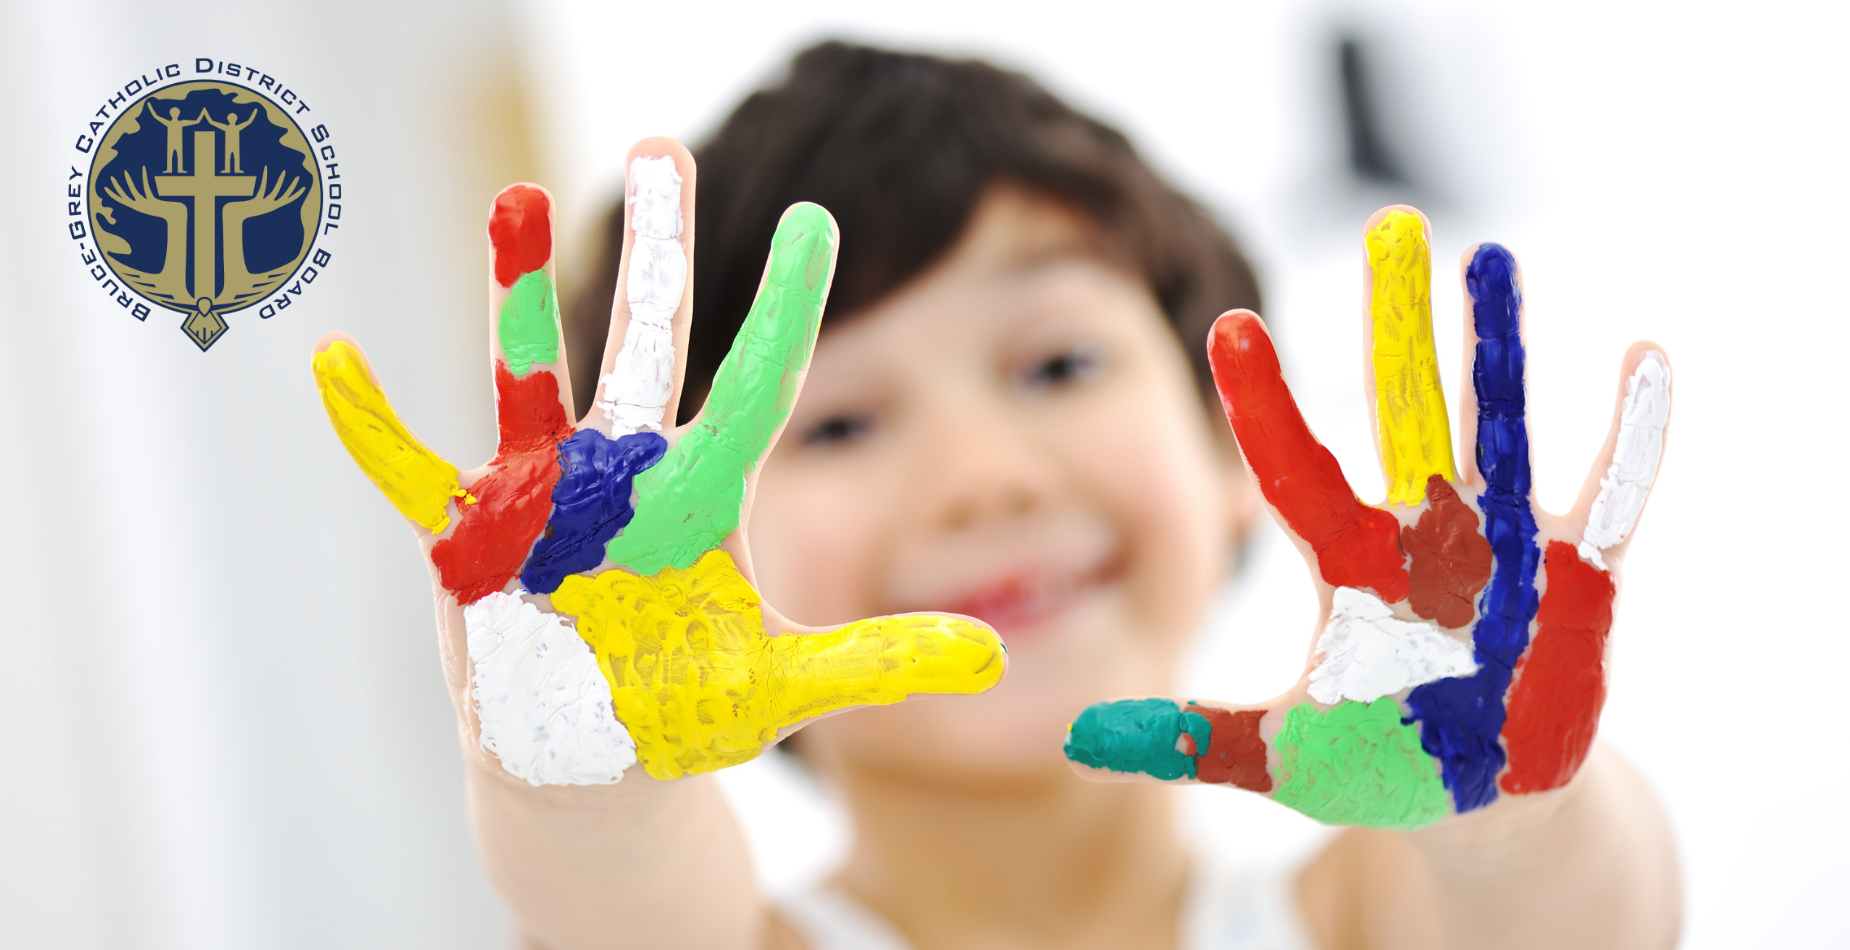 young child holding up hands covered in paint